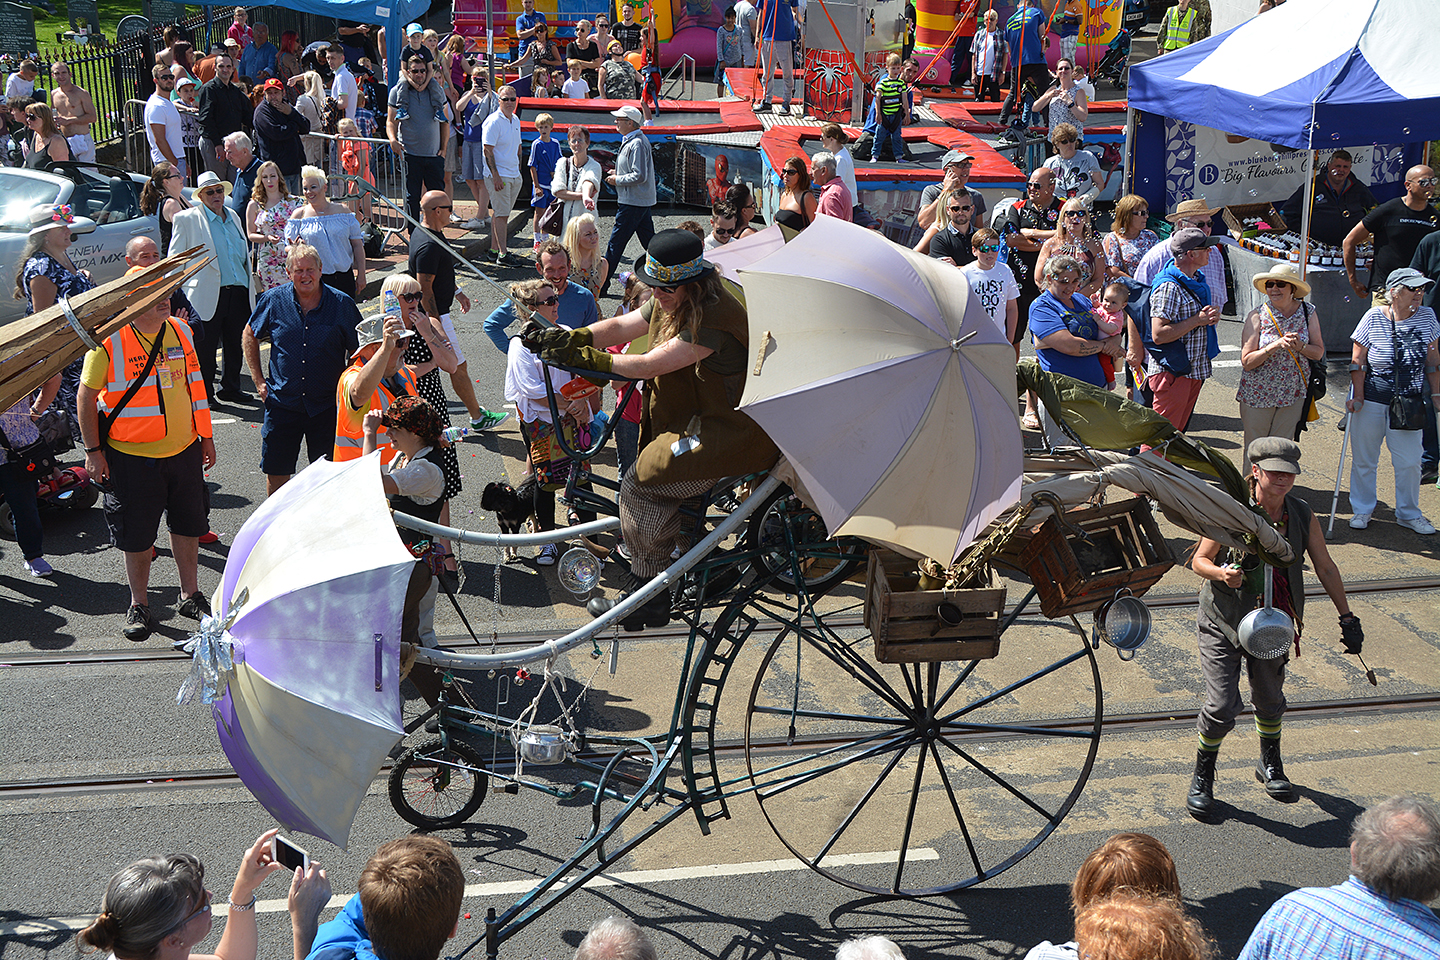 SpareParts Festival, as pioneered by Tram Sunday, is to receive a three-year investment thanks to Arts Council England.